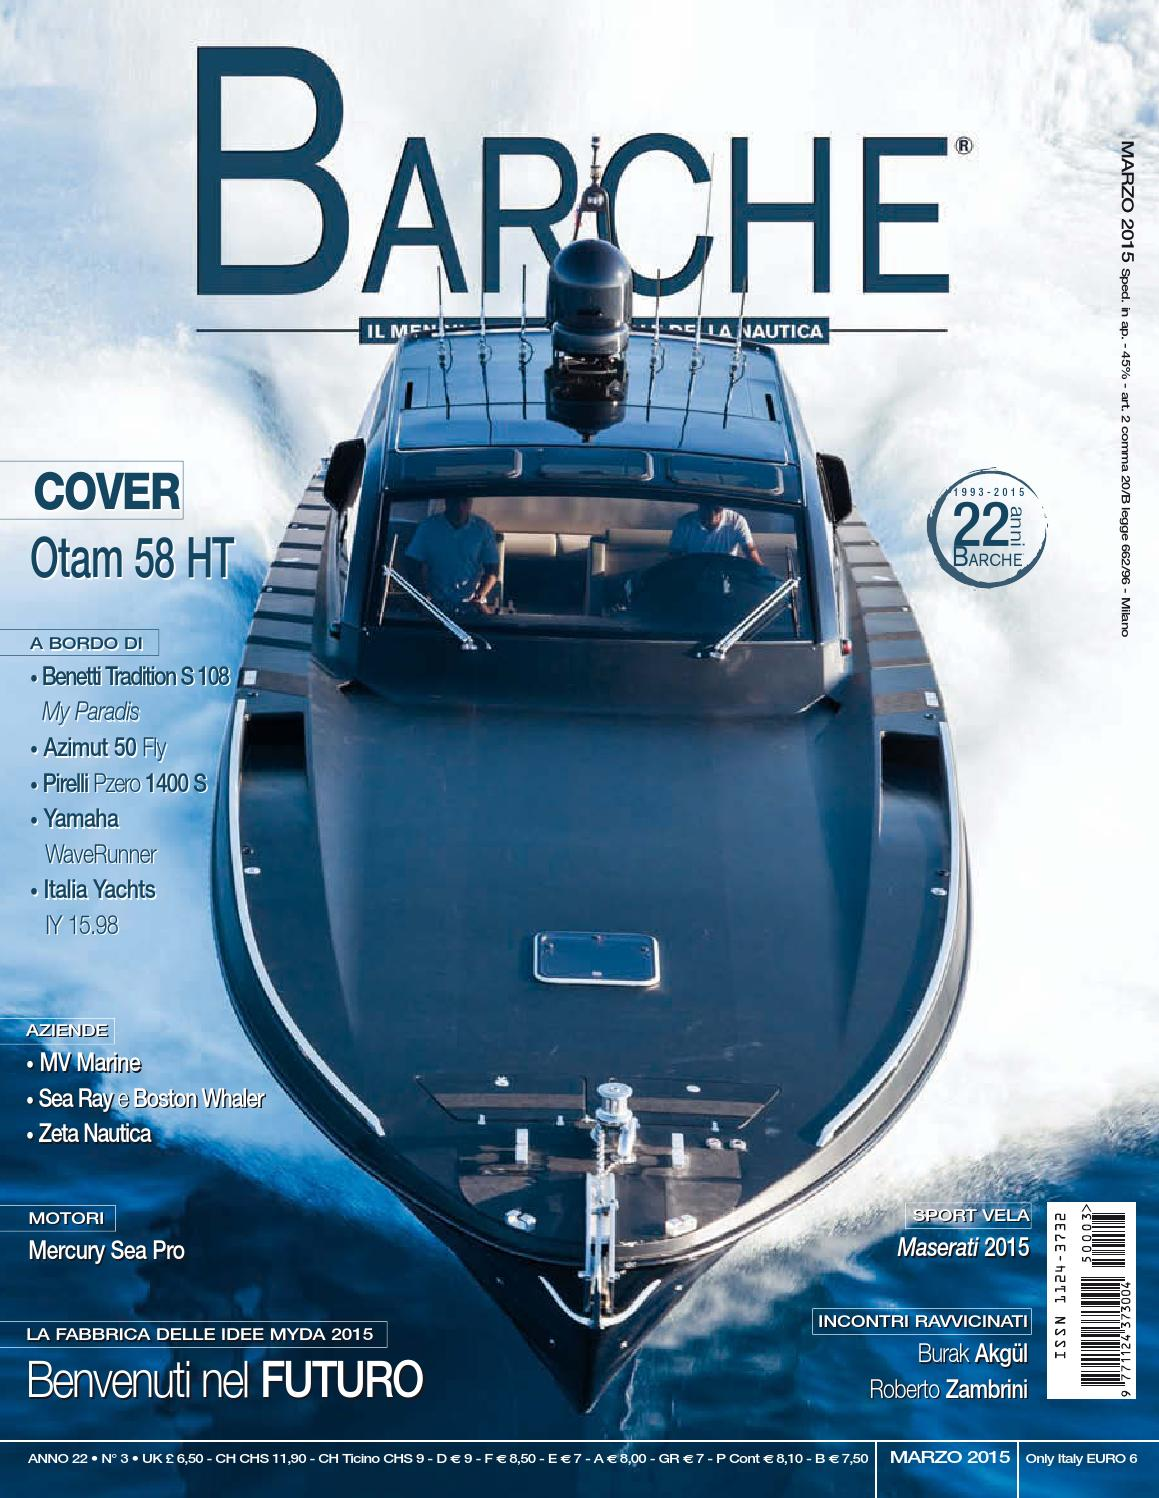 BARCHE March 2015 by INTERNATIONAL SEA PRESS SRL - BARCHE - issuu 01fc787bcd8